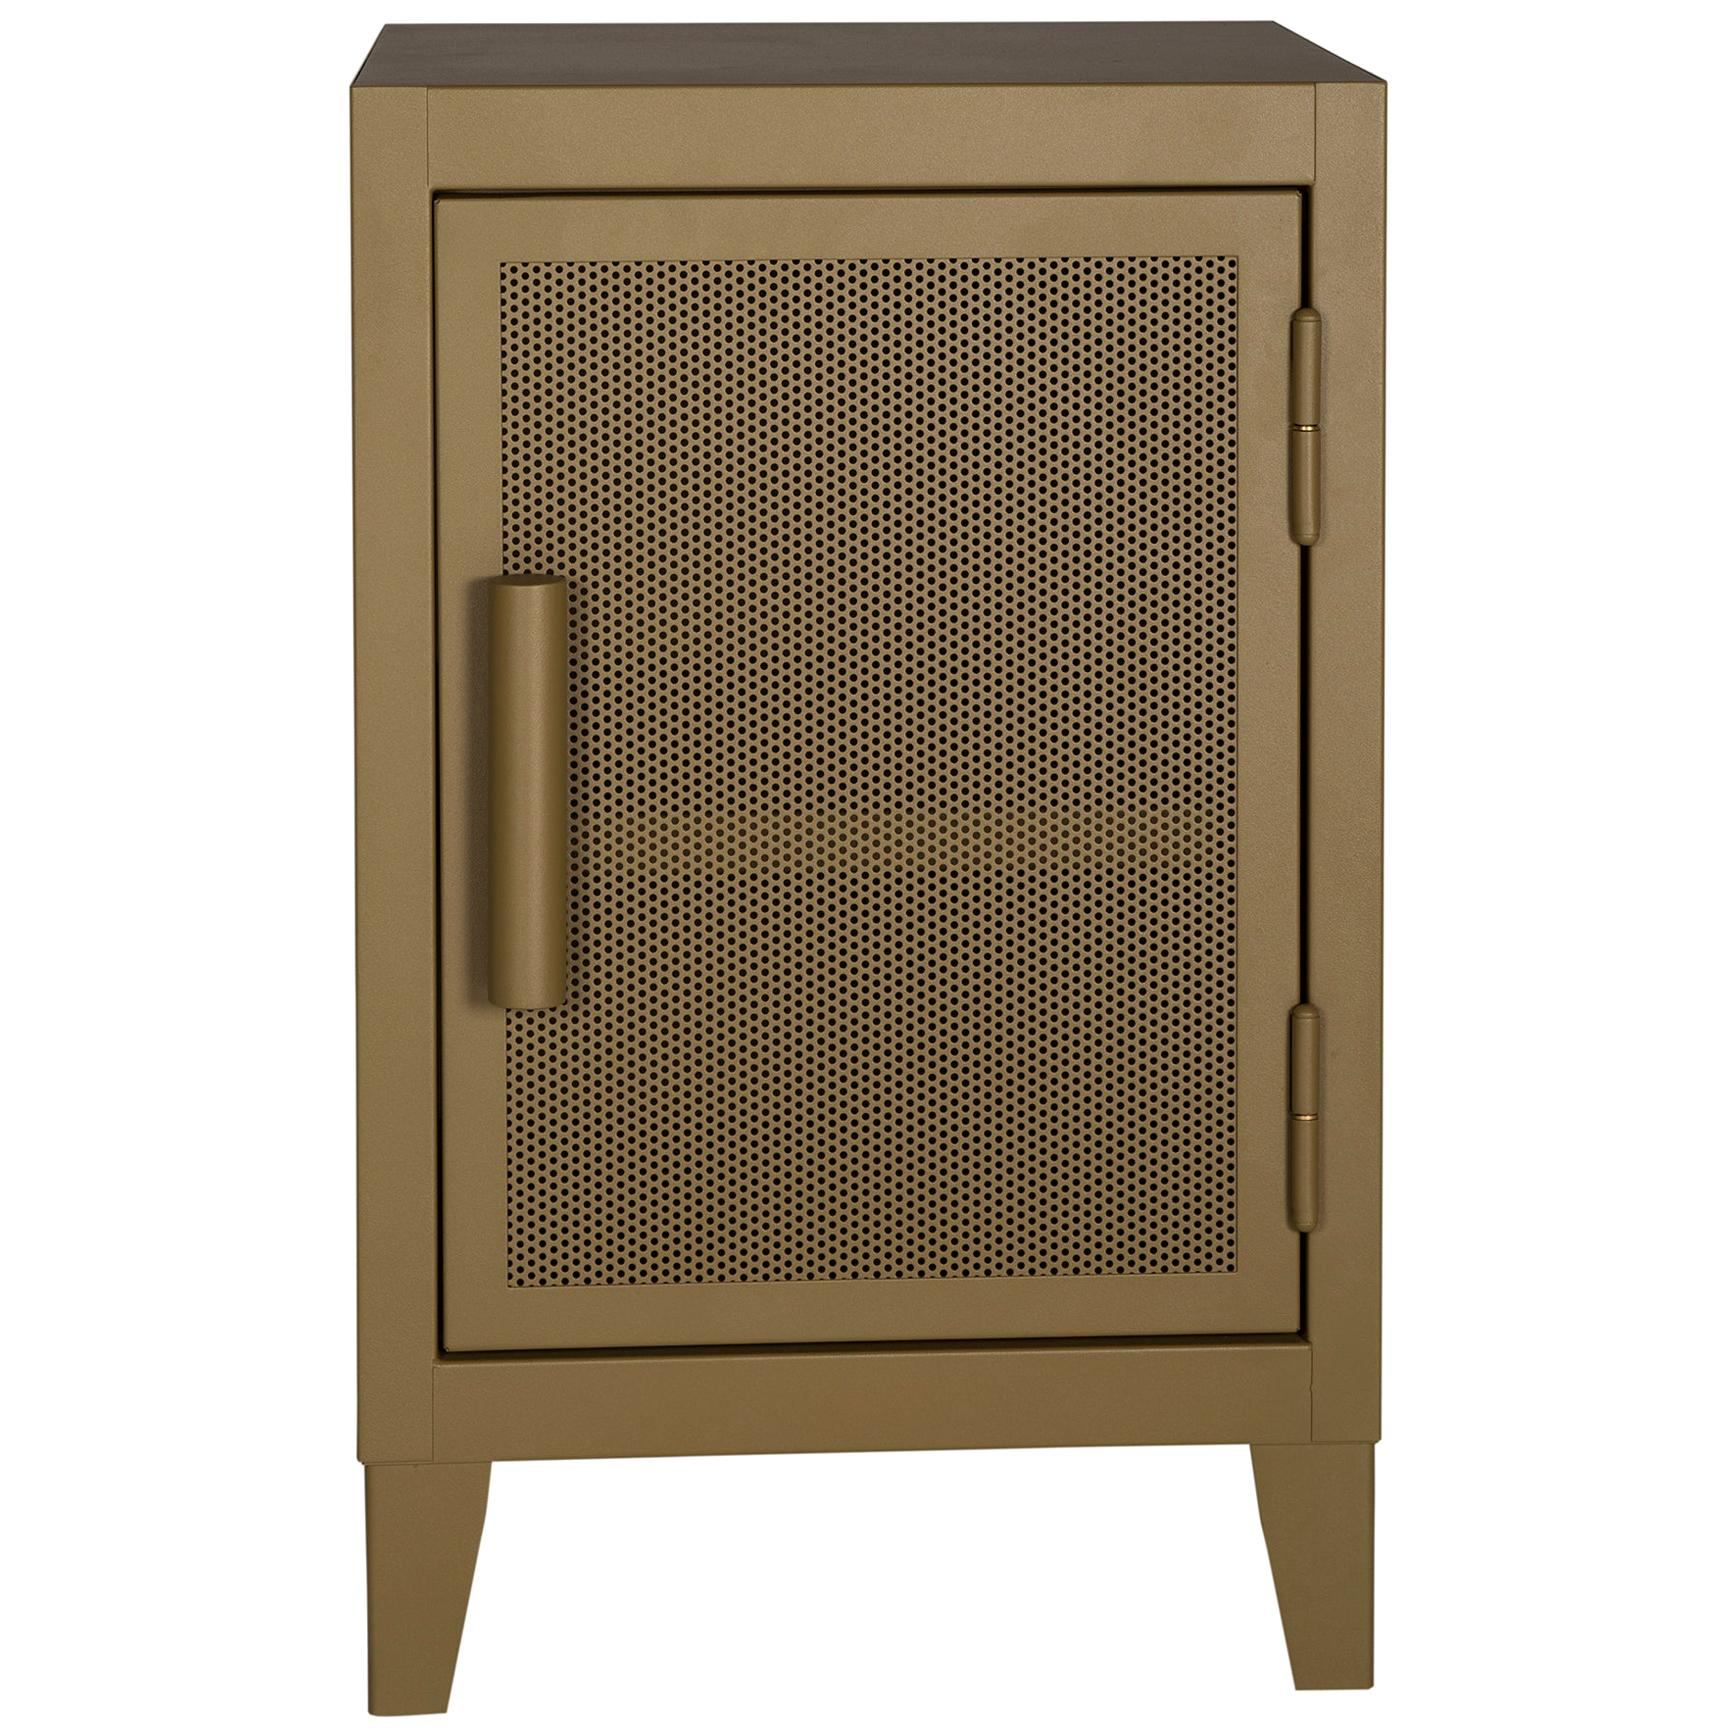 B1 H64 Perforated Mini Steel Locker in Pop Colors by Tolix